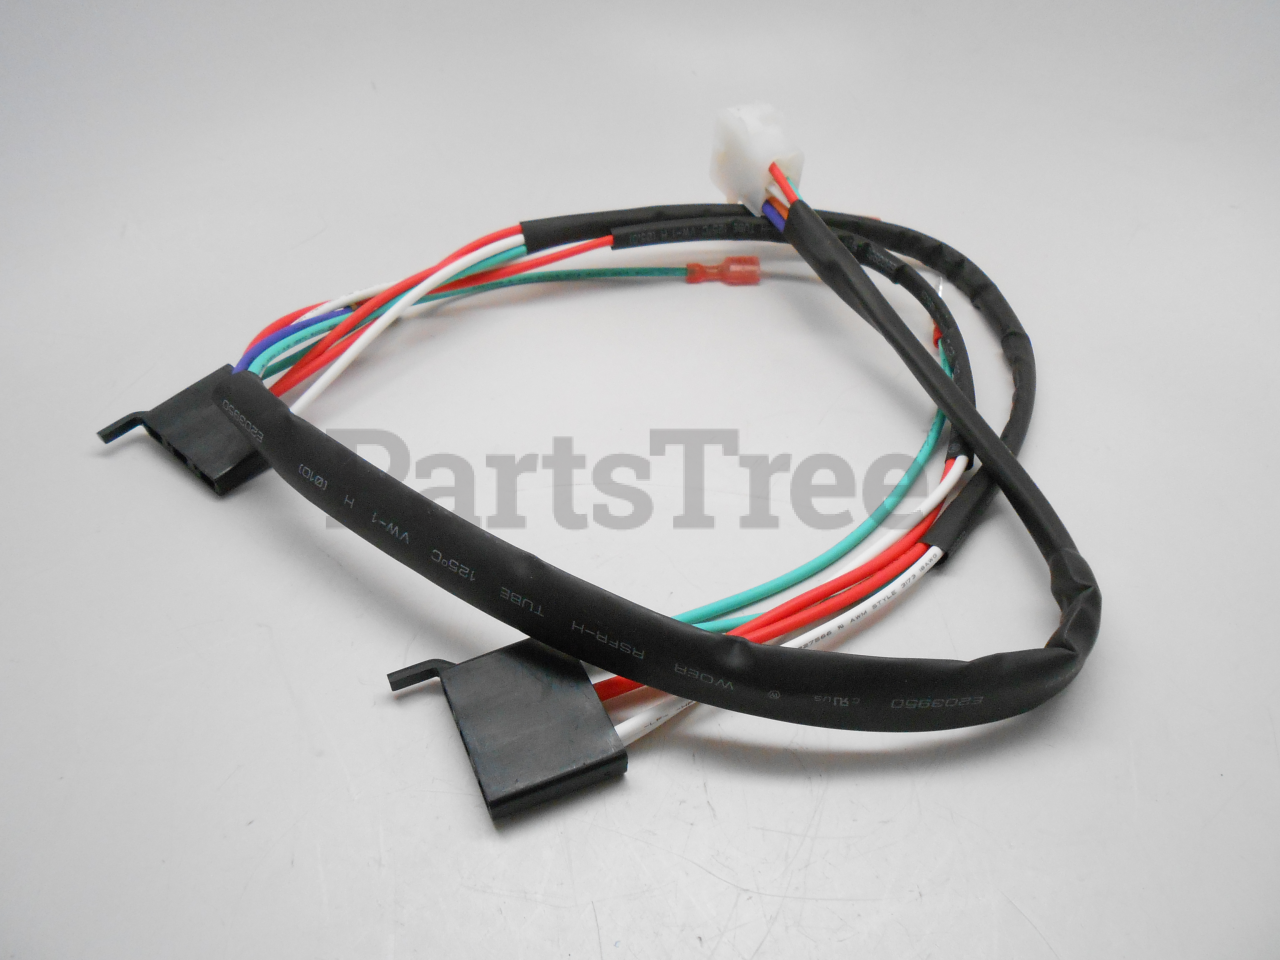 kohler engines part 32 176 17 s kit harness wiring. Black Bedroom Furniture Sets. Home Design Ideas